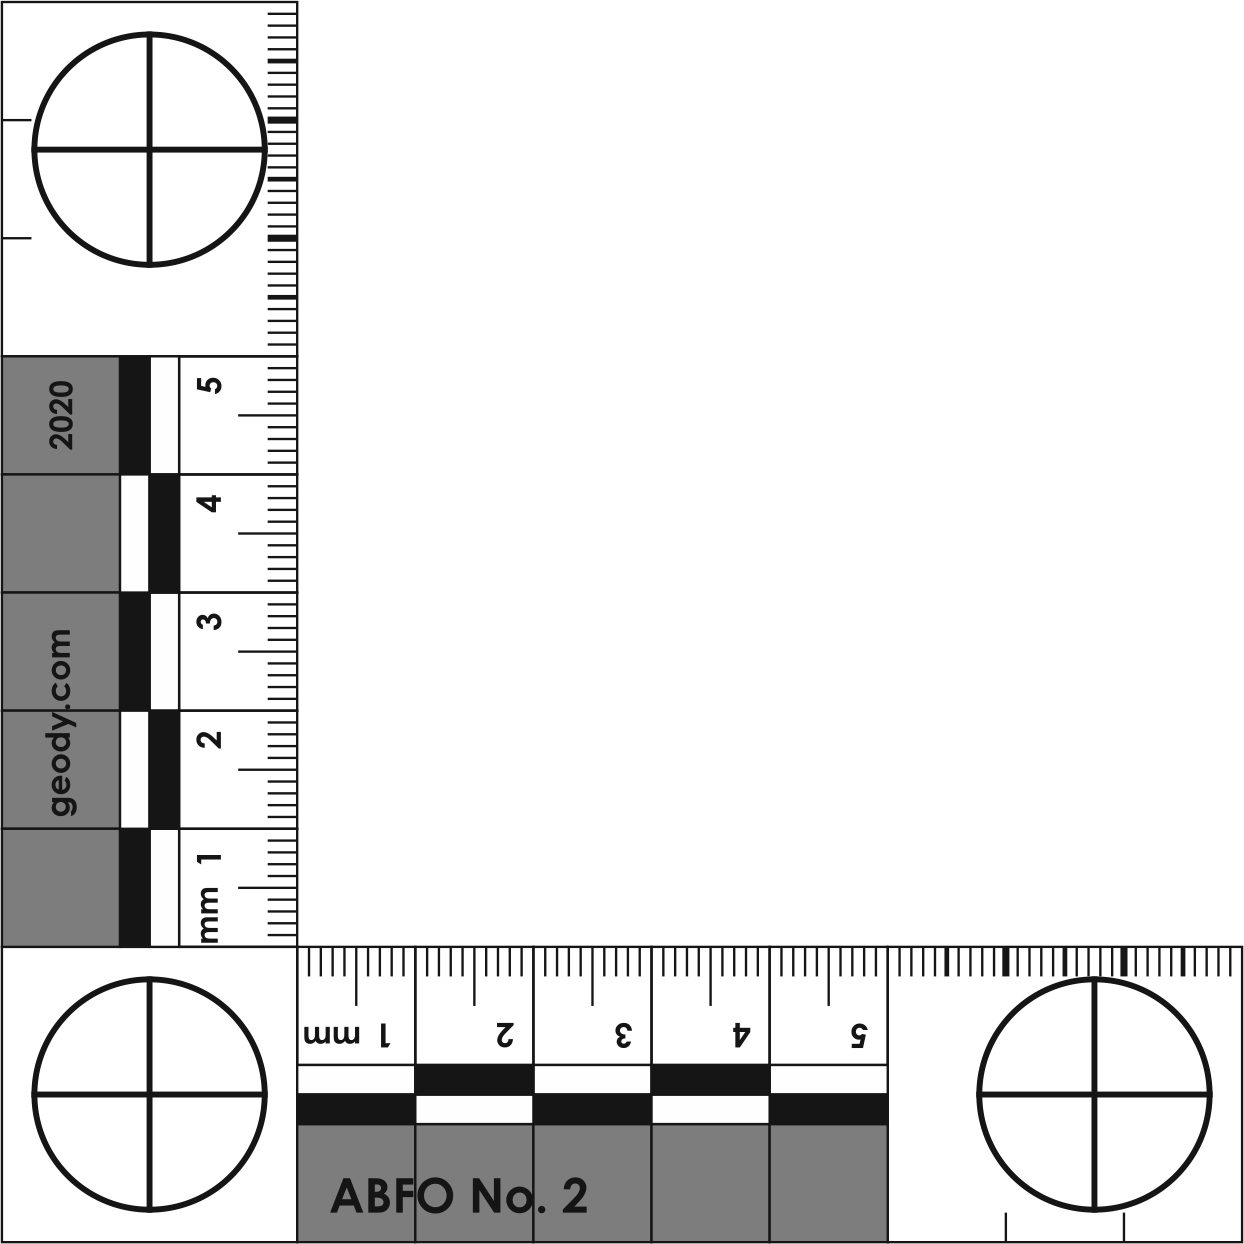 L-shaped (right angle) Photo Scale Ruler (ABFO No. 2 standard)